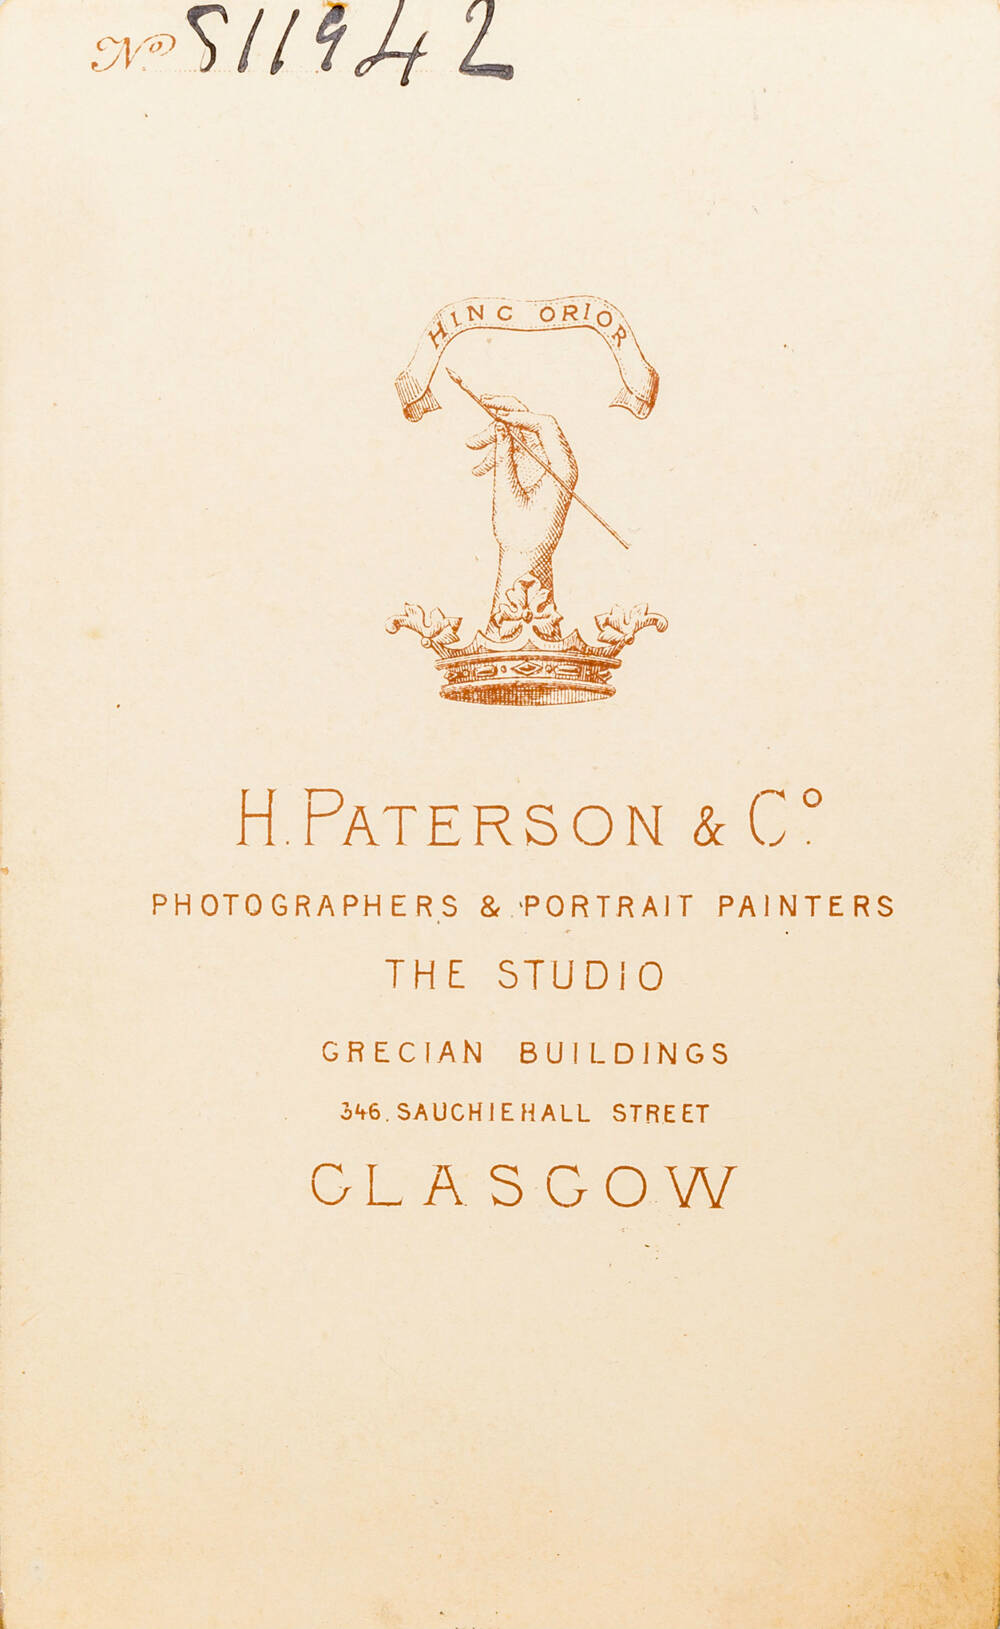 The back of a photo printed with 'H. Paterson & Co.' and their logo of a hand rising from a crown holding a paintbrush.